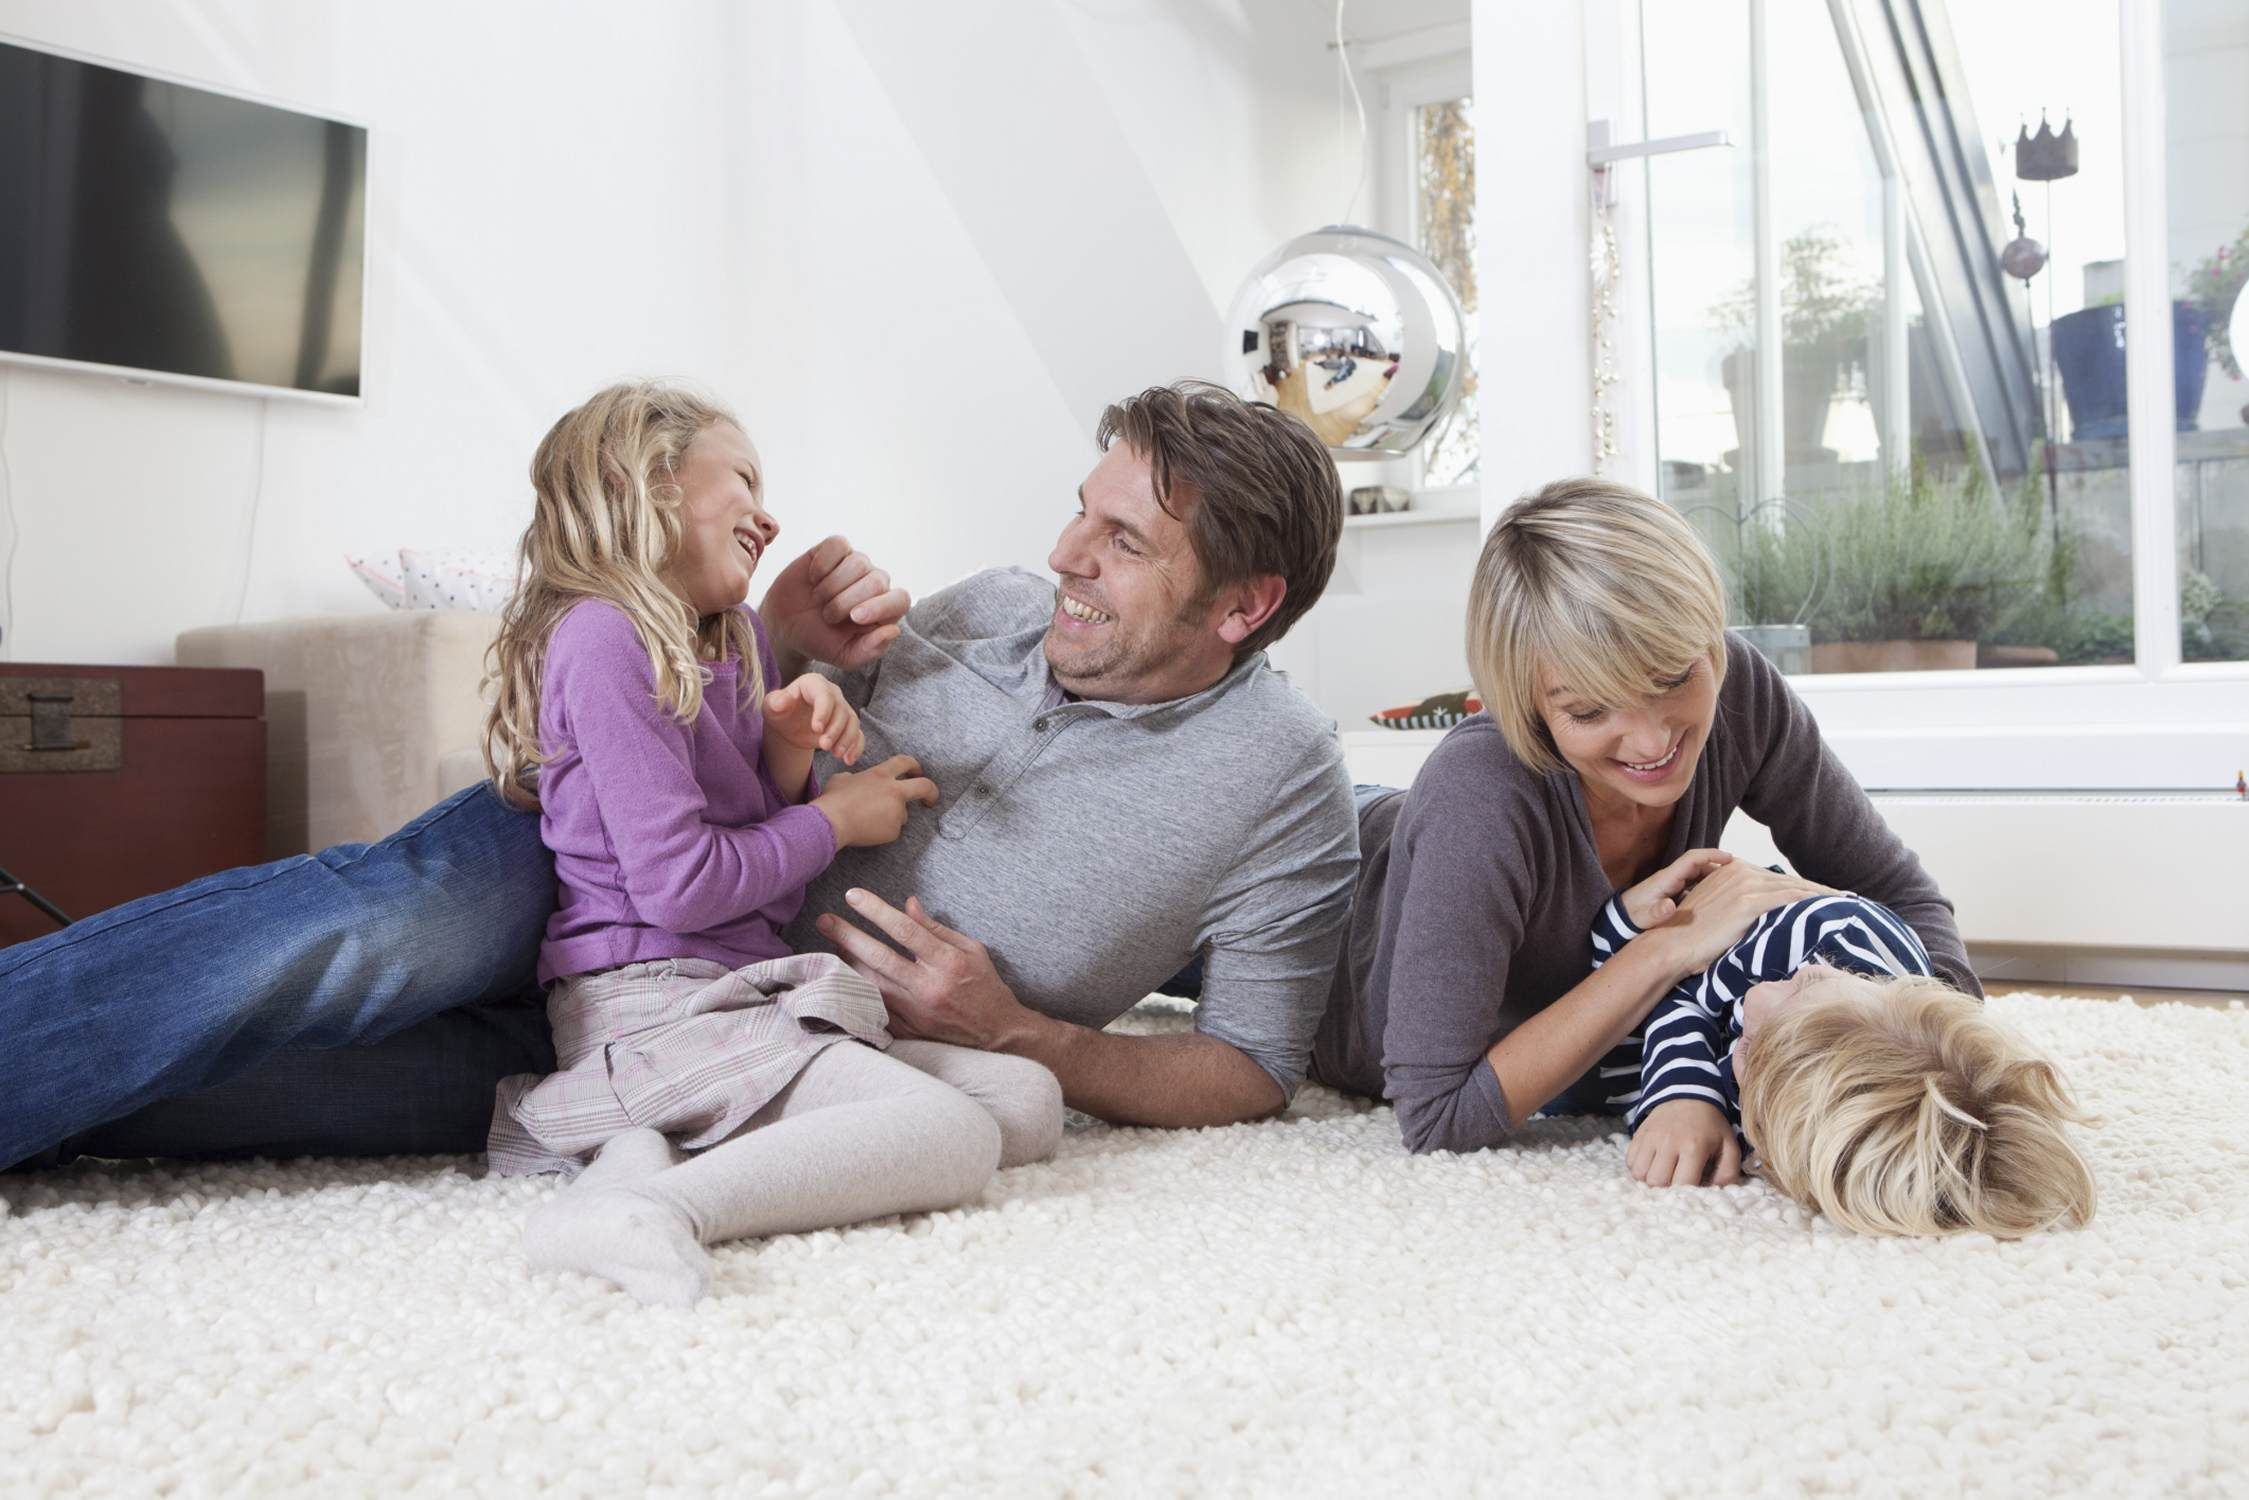 happy-family-with-kids-568177183df78ccc15b28632